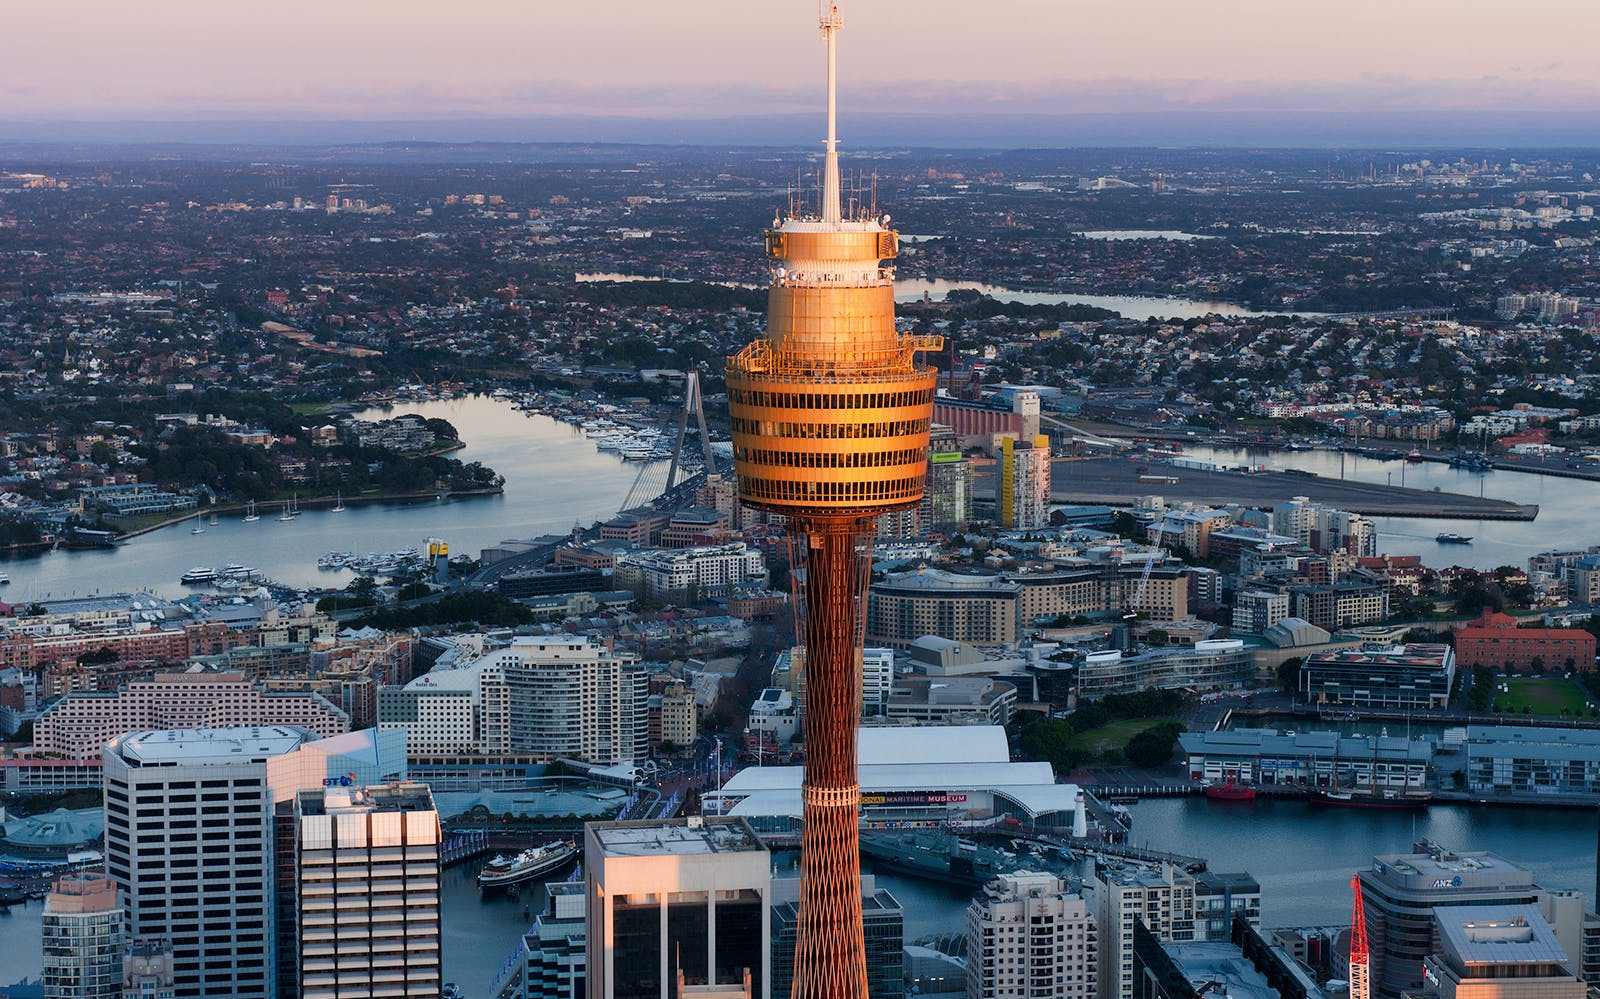 Sydney Tower Eye Entry Ticket